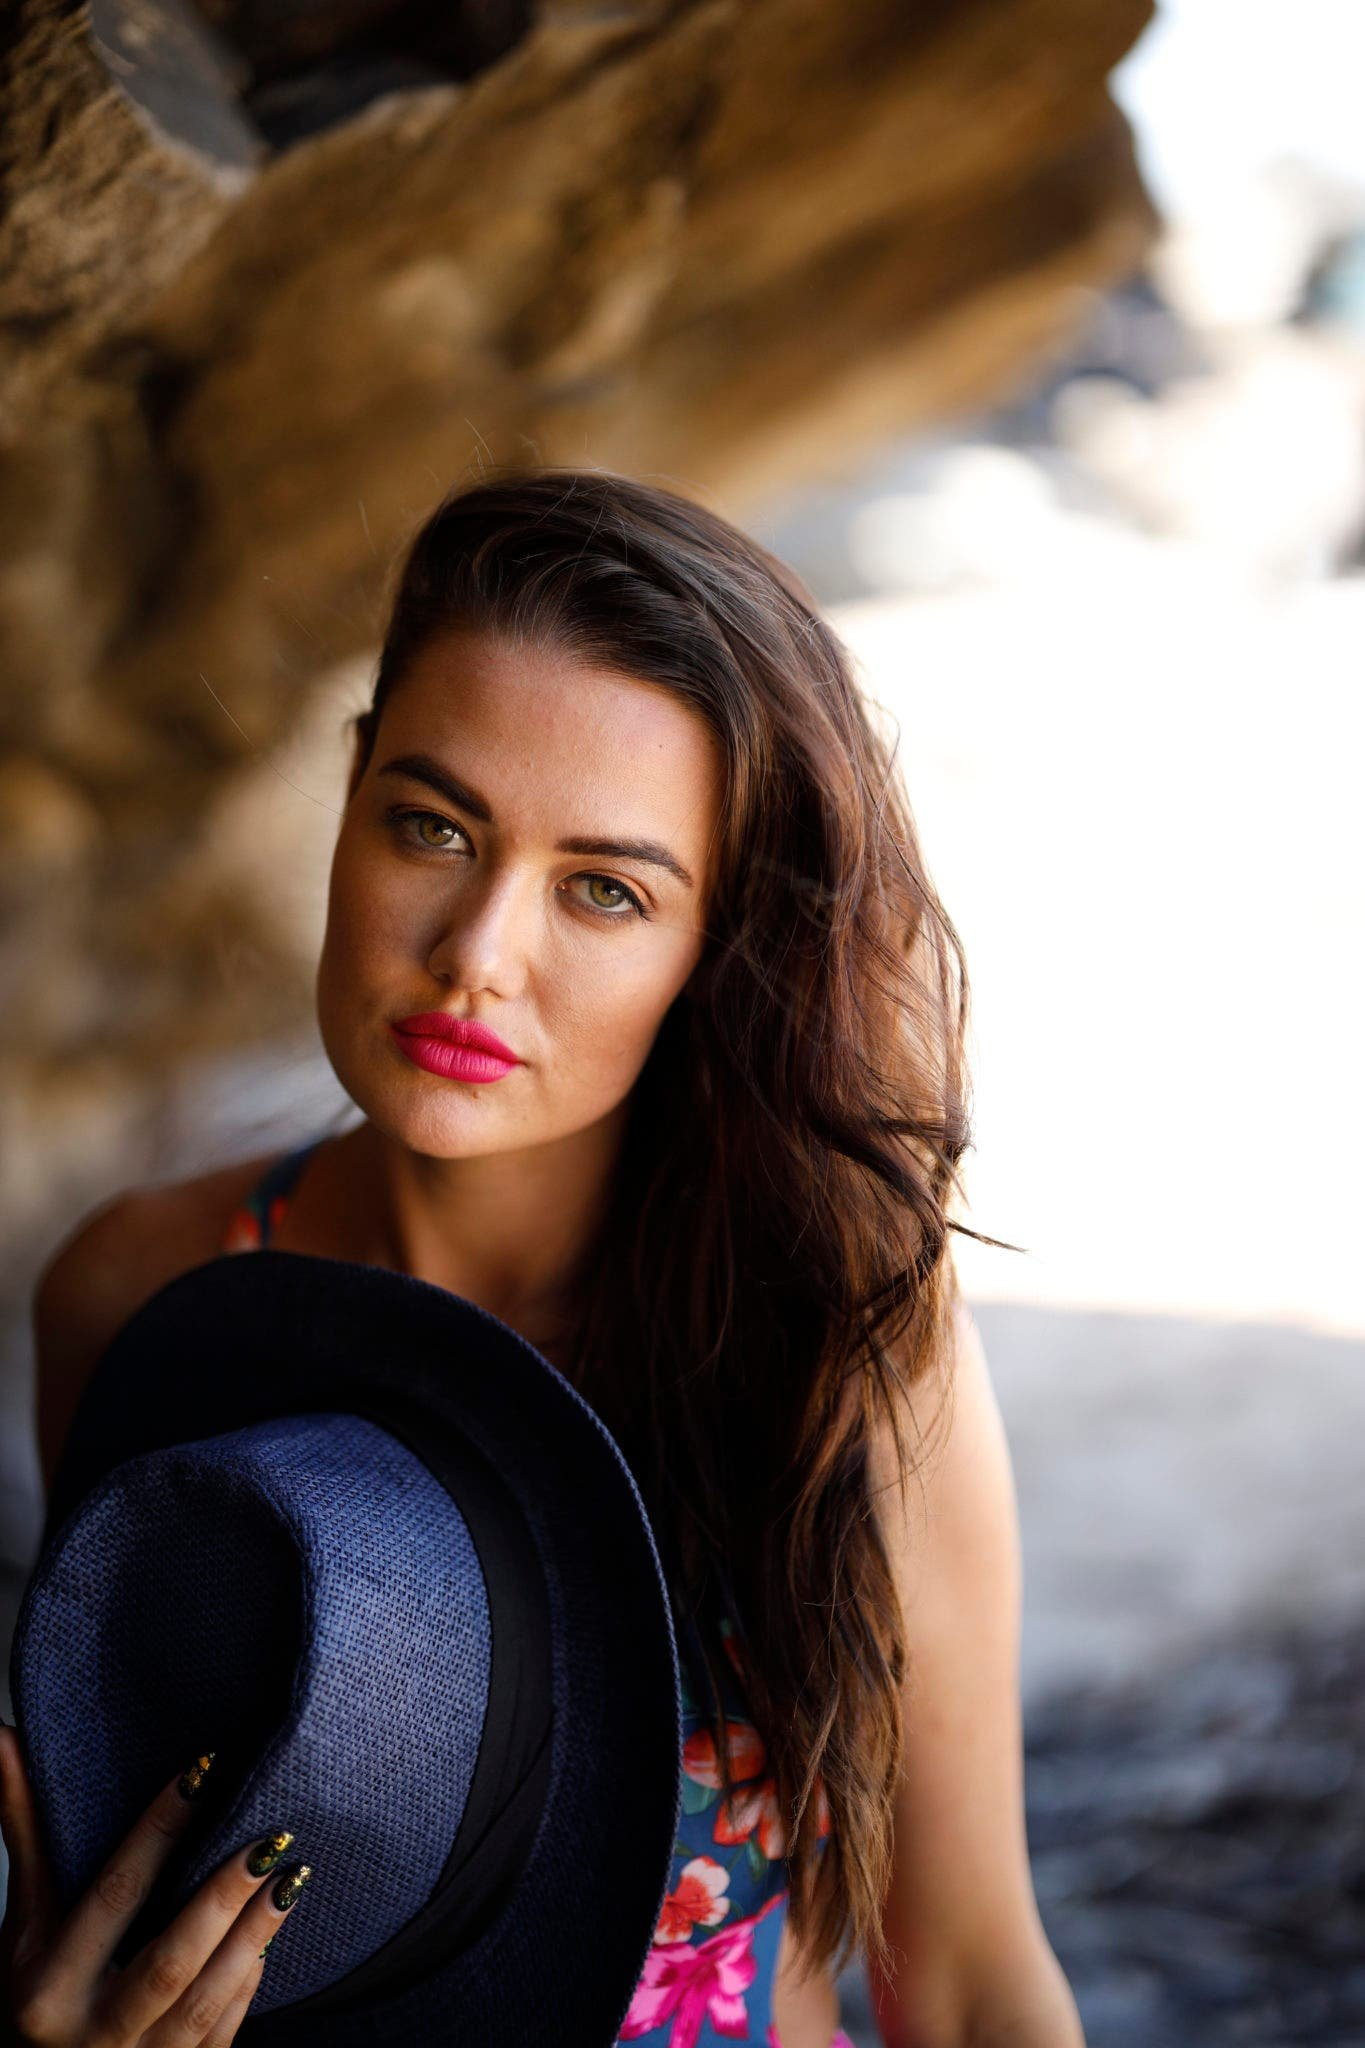 How to Enjoy Shooting Portraits With Your f1.2 Lens